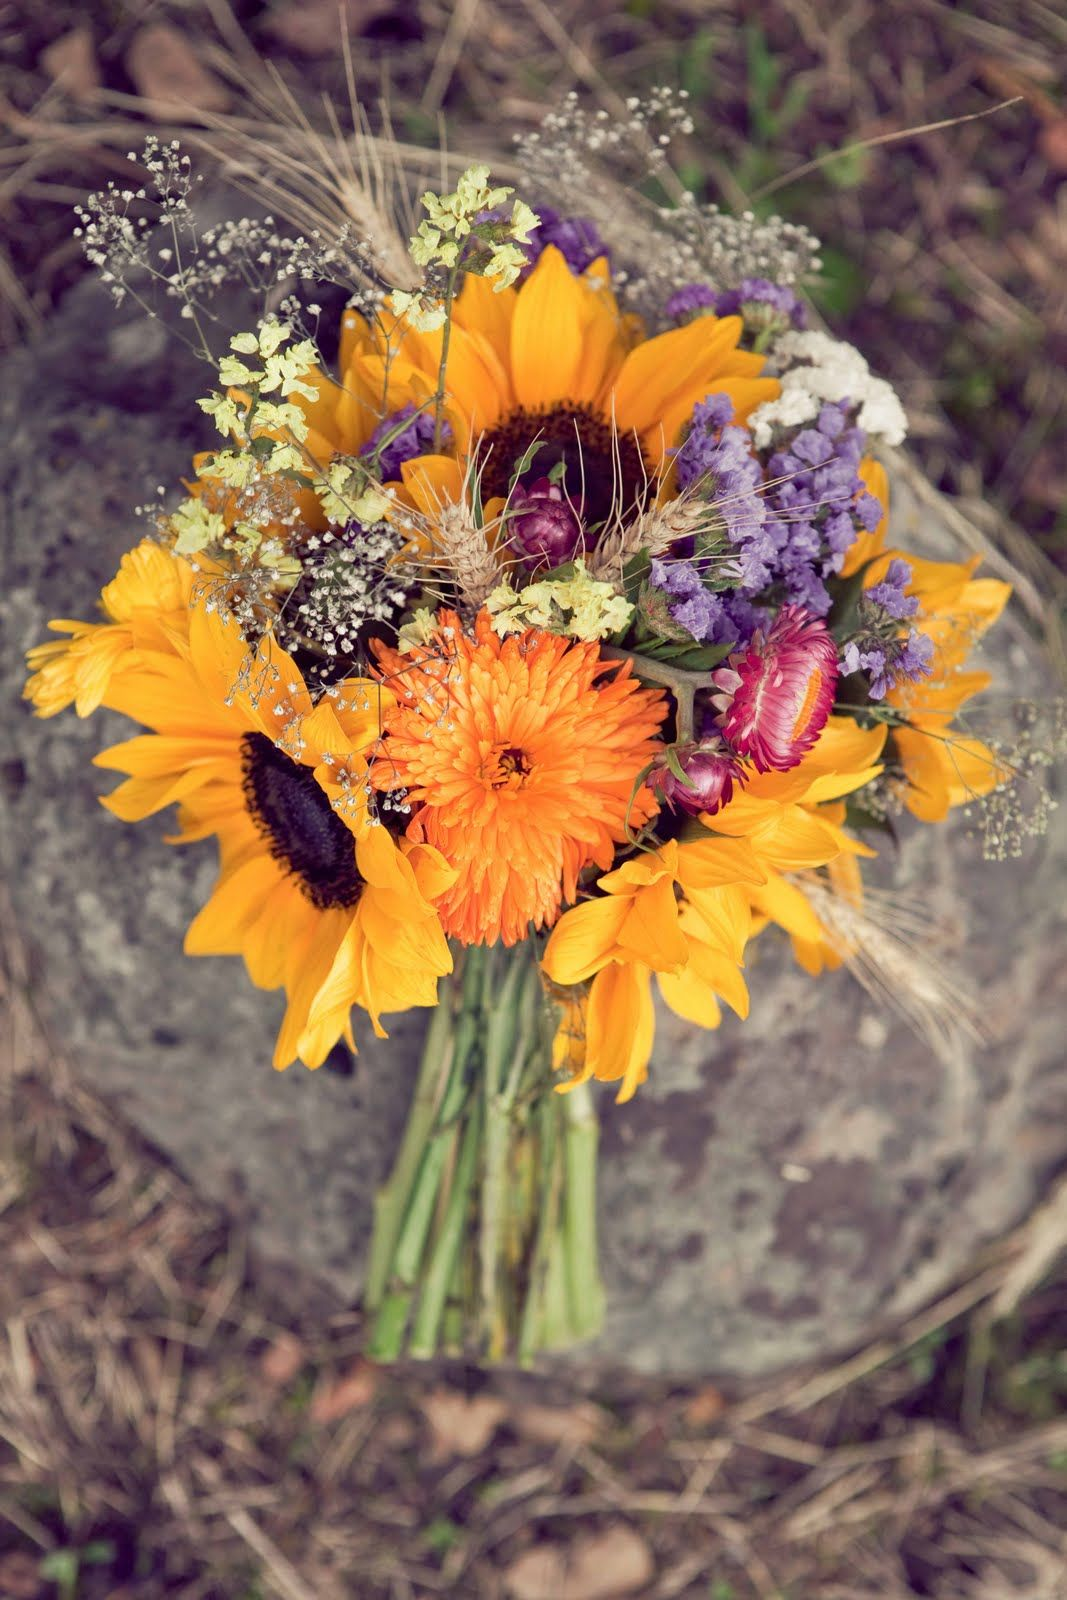 wildflower bouquet love those sunflowers bouquets bright colorful pinterest. Black Bedroom Furniture Sets. Home Design Ideas